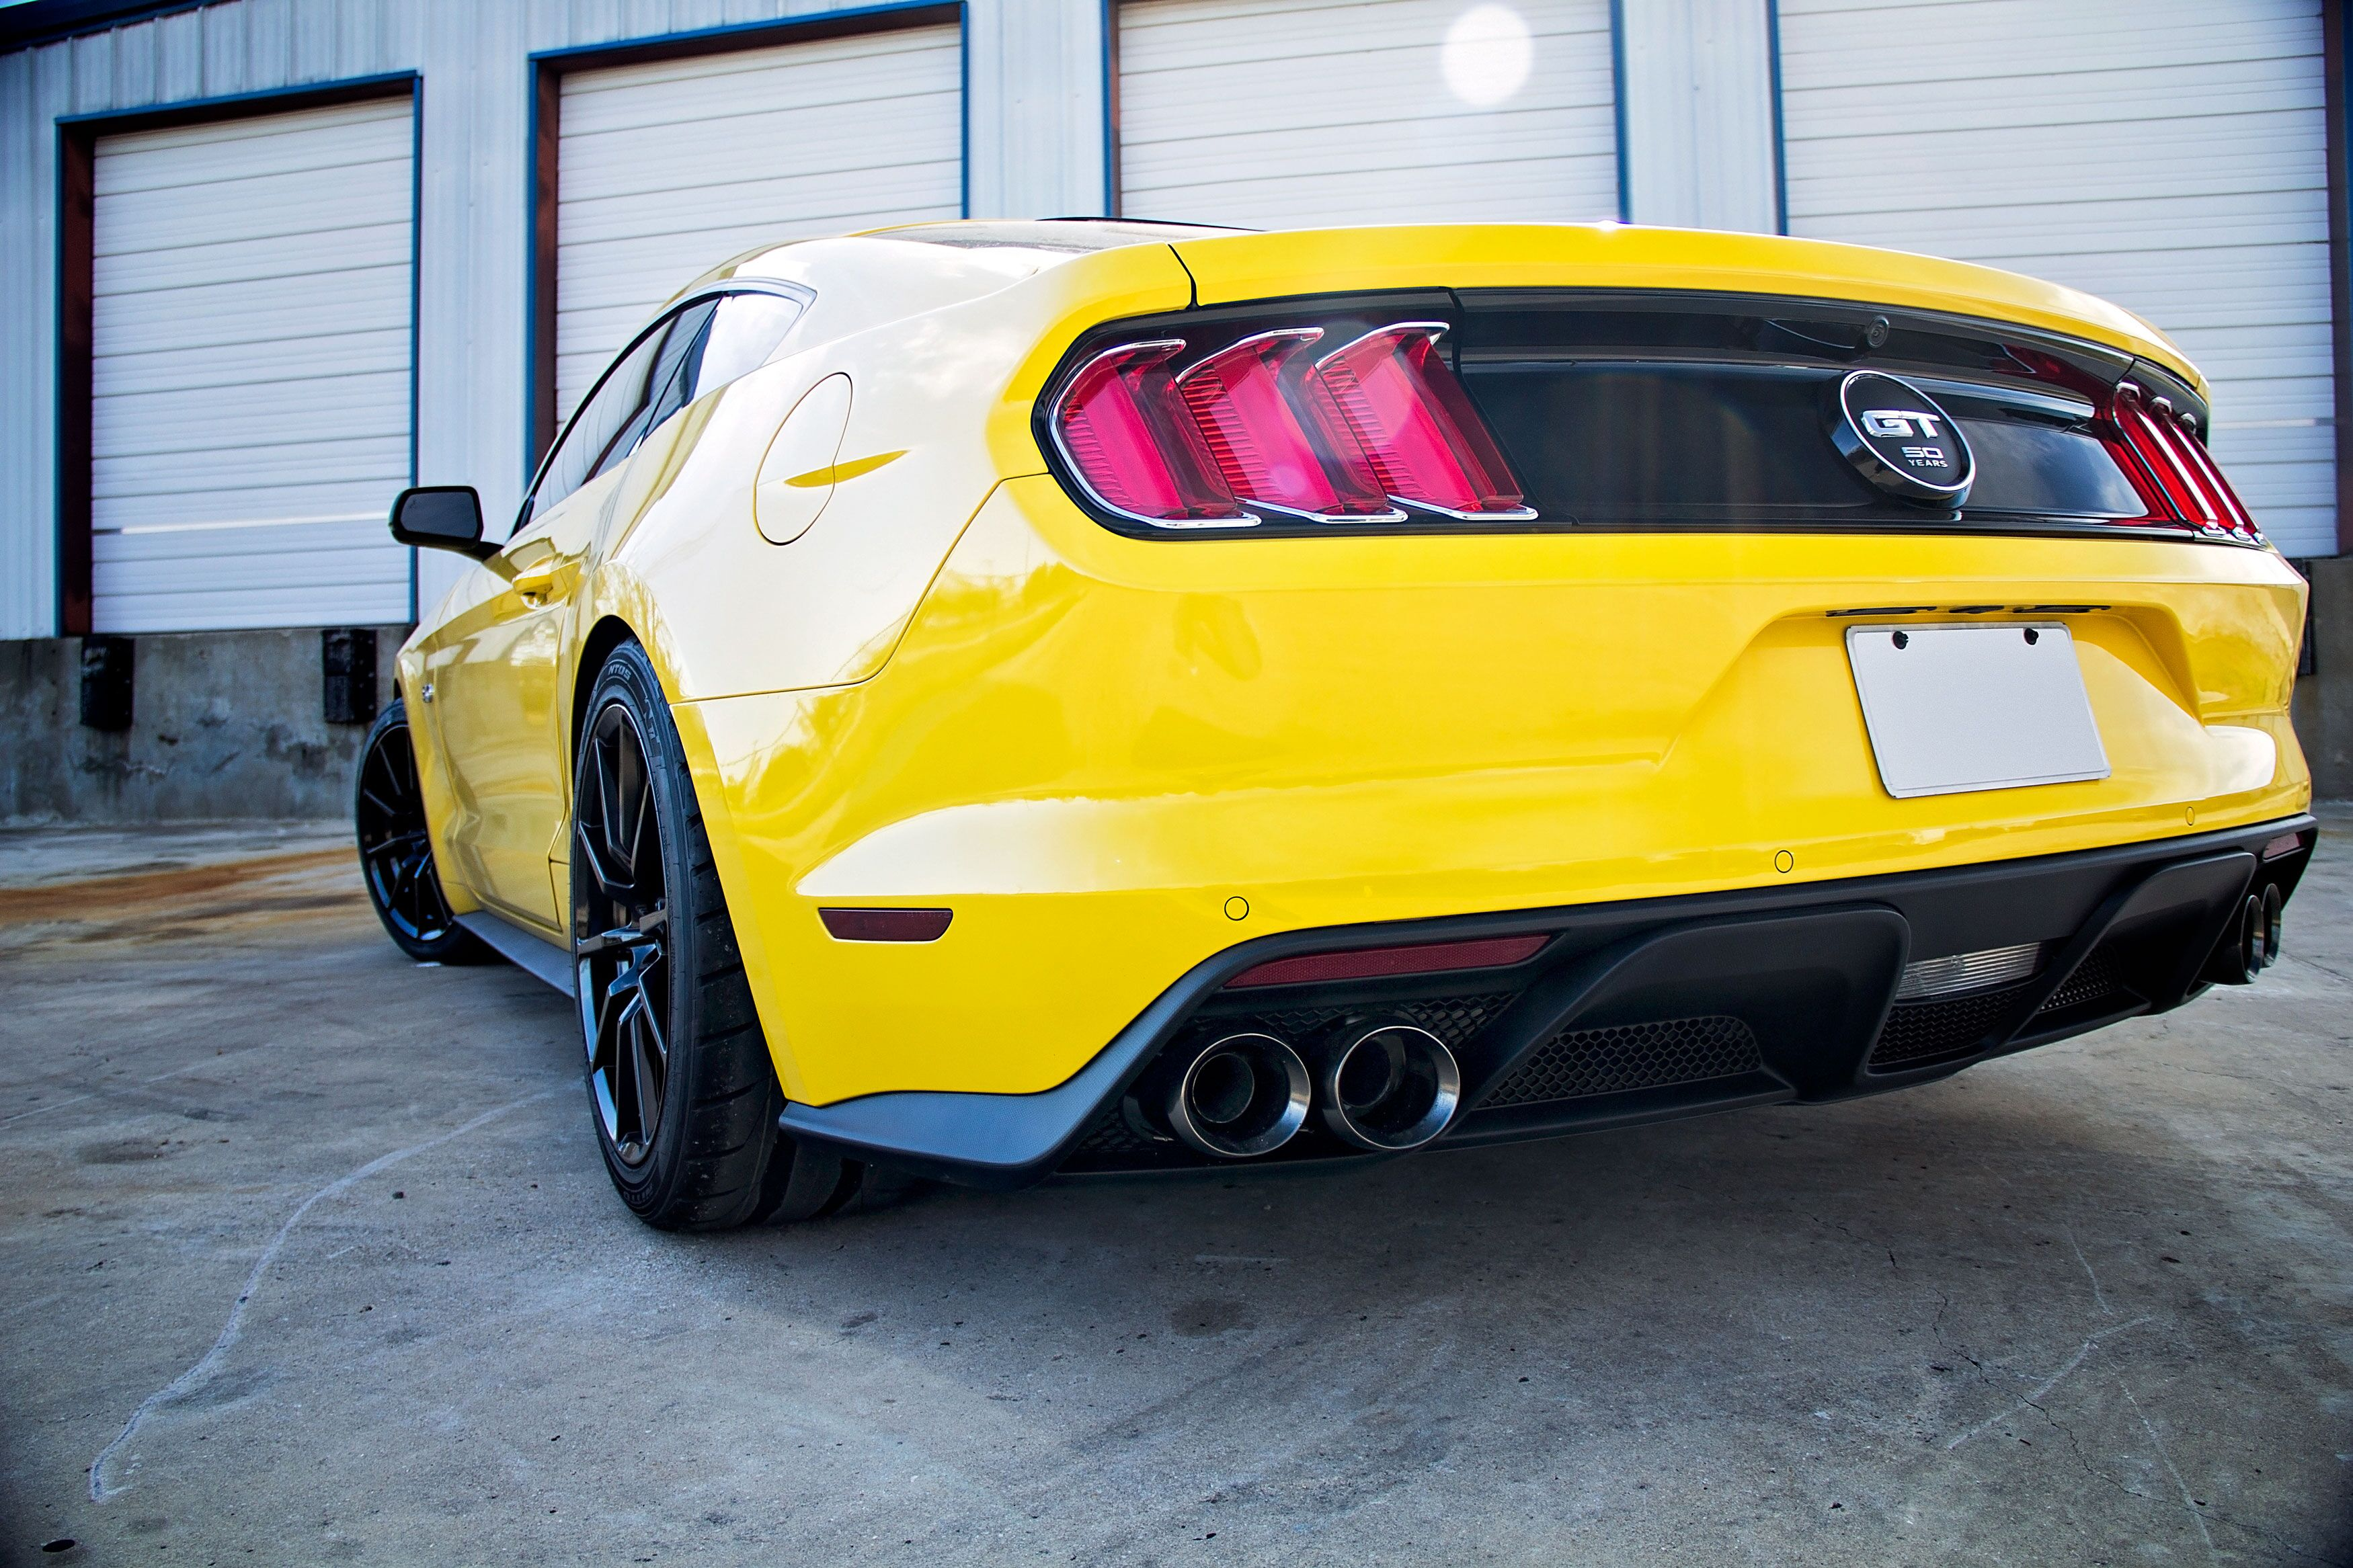 LMR Shop Car Build - 2015 Yellow Mustang GT - LMR Shop Car Build - 2015 Yellow Mustang GT